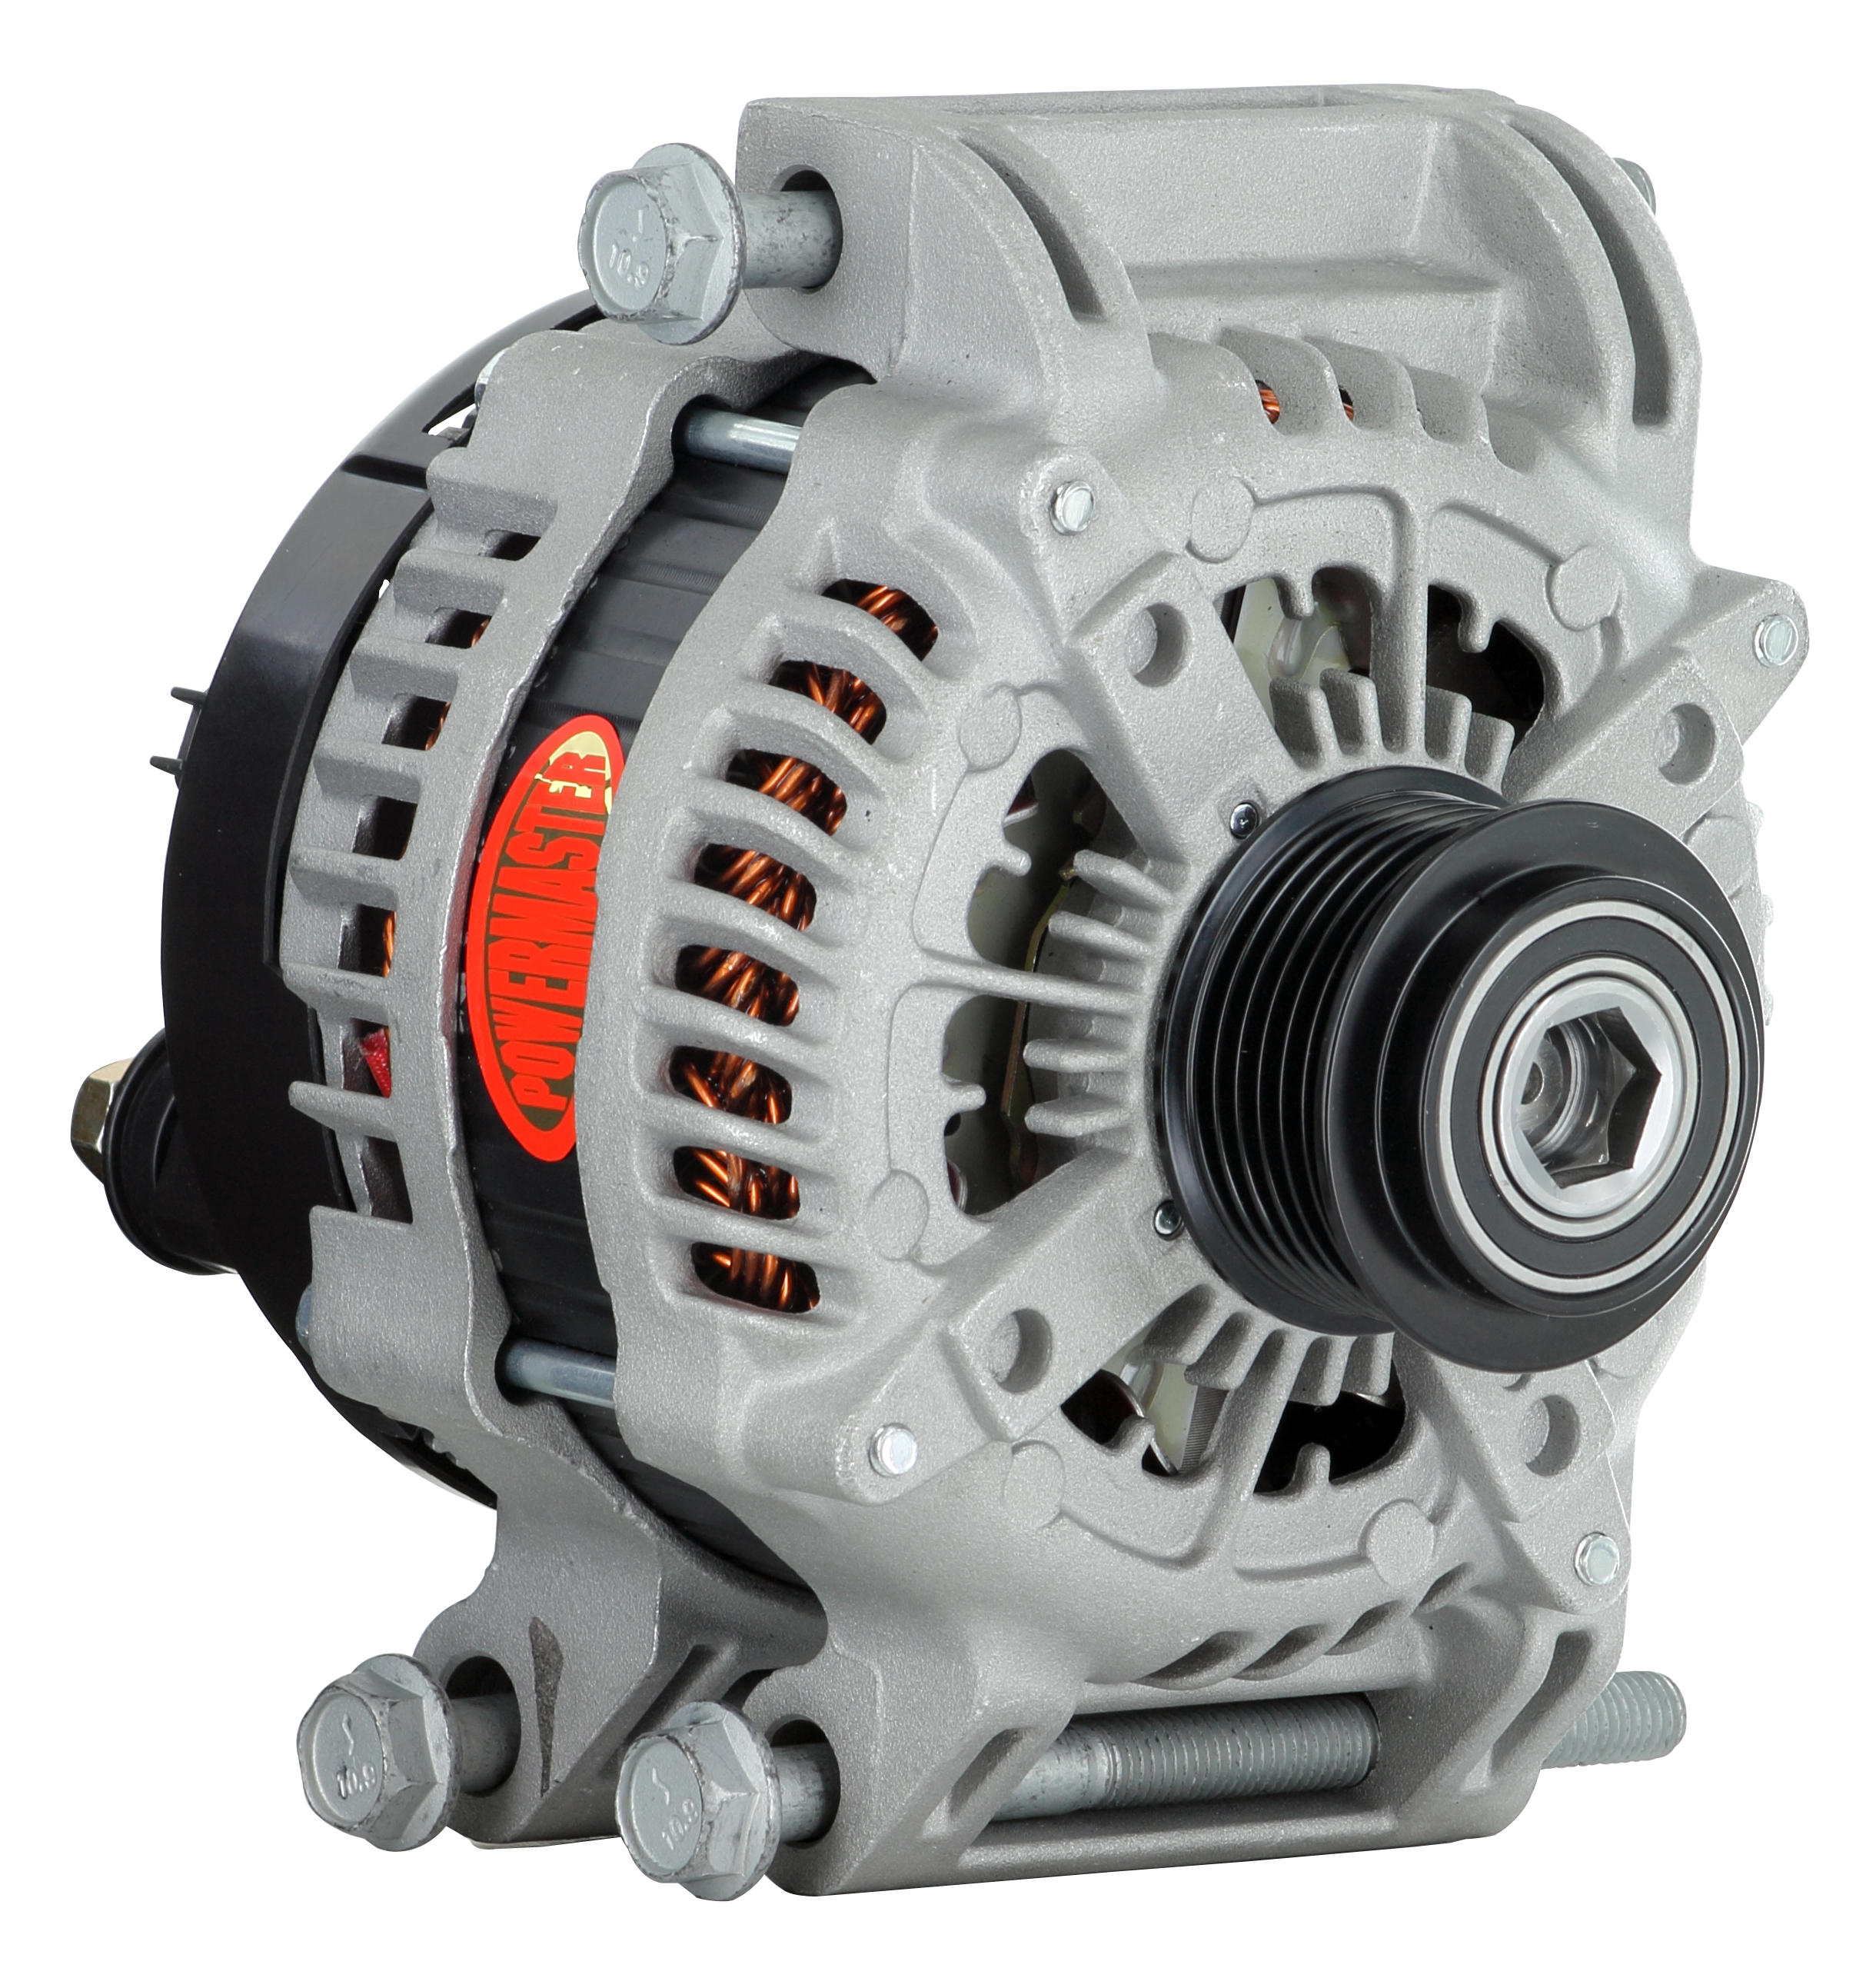 New Product: Powermaster Performance Introduces Powerful New HPR Series Alternators